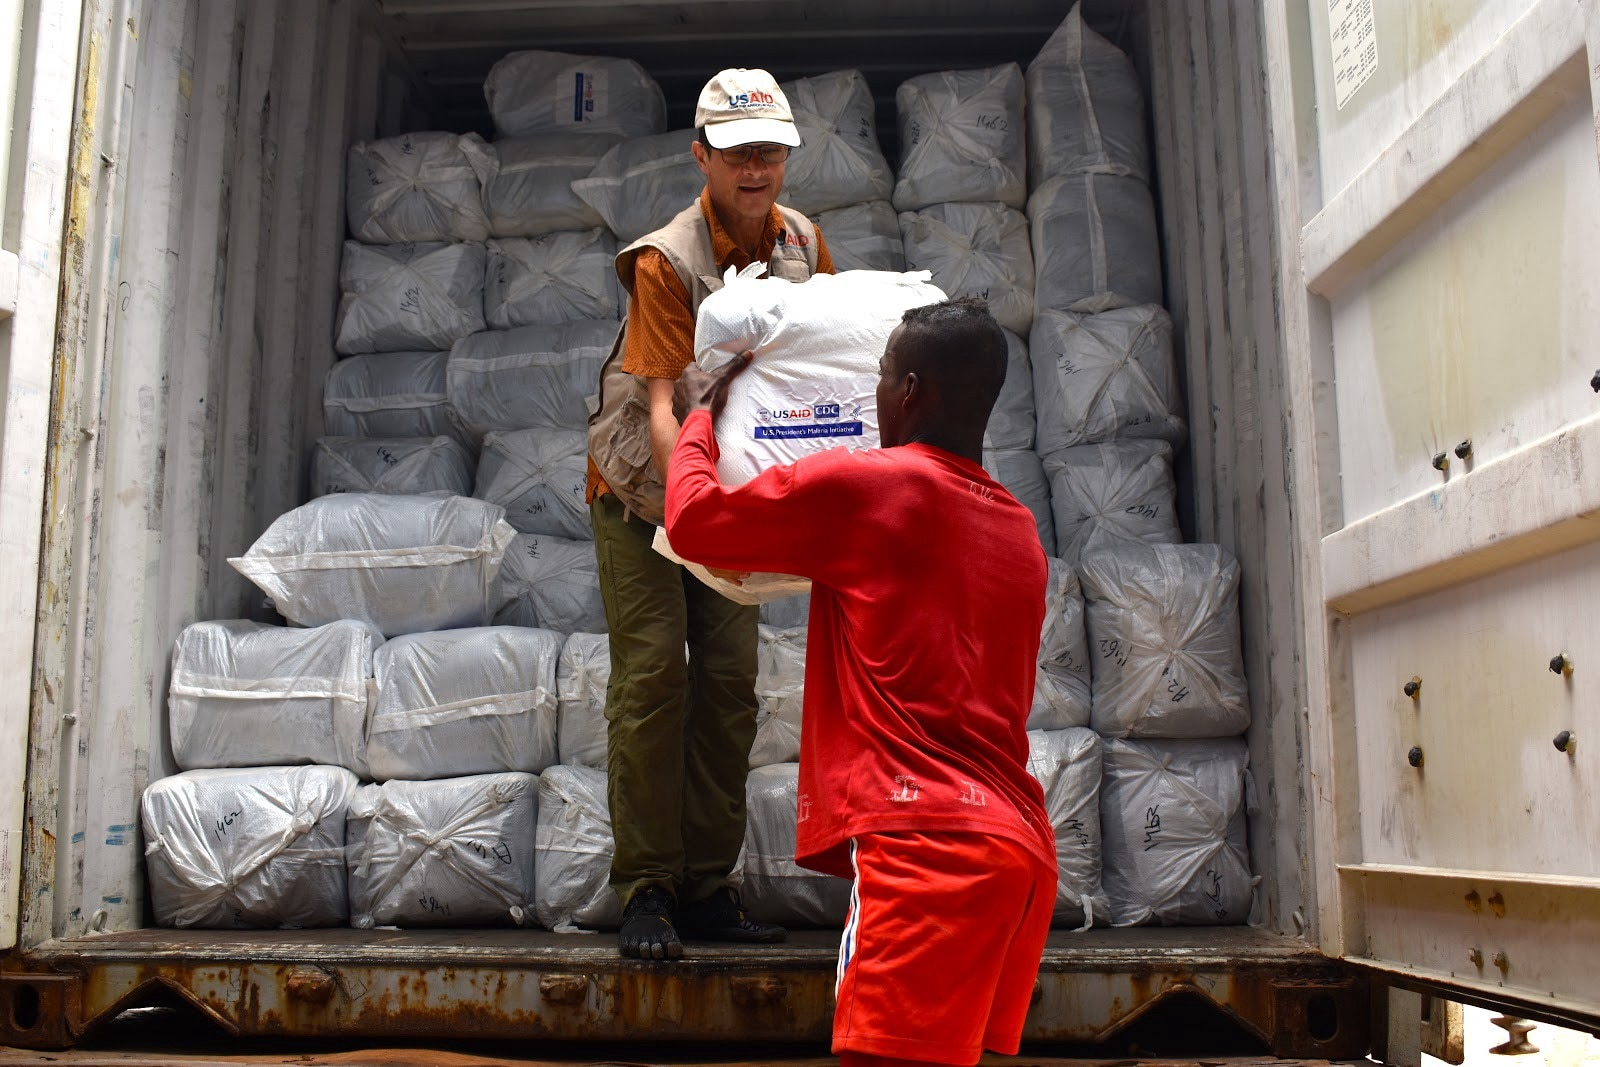 Bed nets are off-loaded from trucks into a warehouse in Antananarivo. (Anne Daugherty, USAID Madagascar)